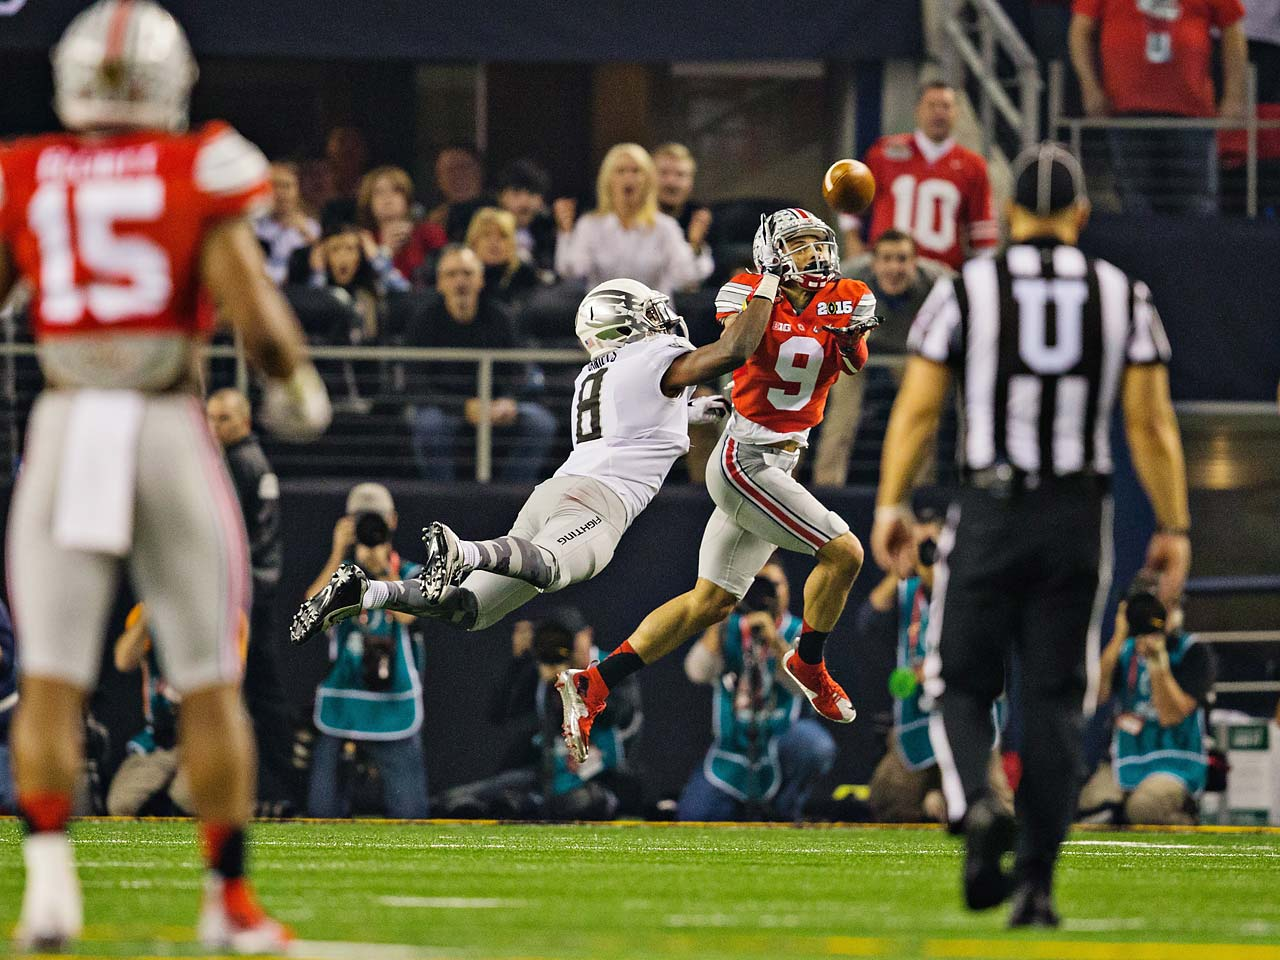 Ohio State wide receiver Devin Smith attempts a catch over Oregon cornerback Reggie Daniels.